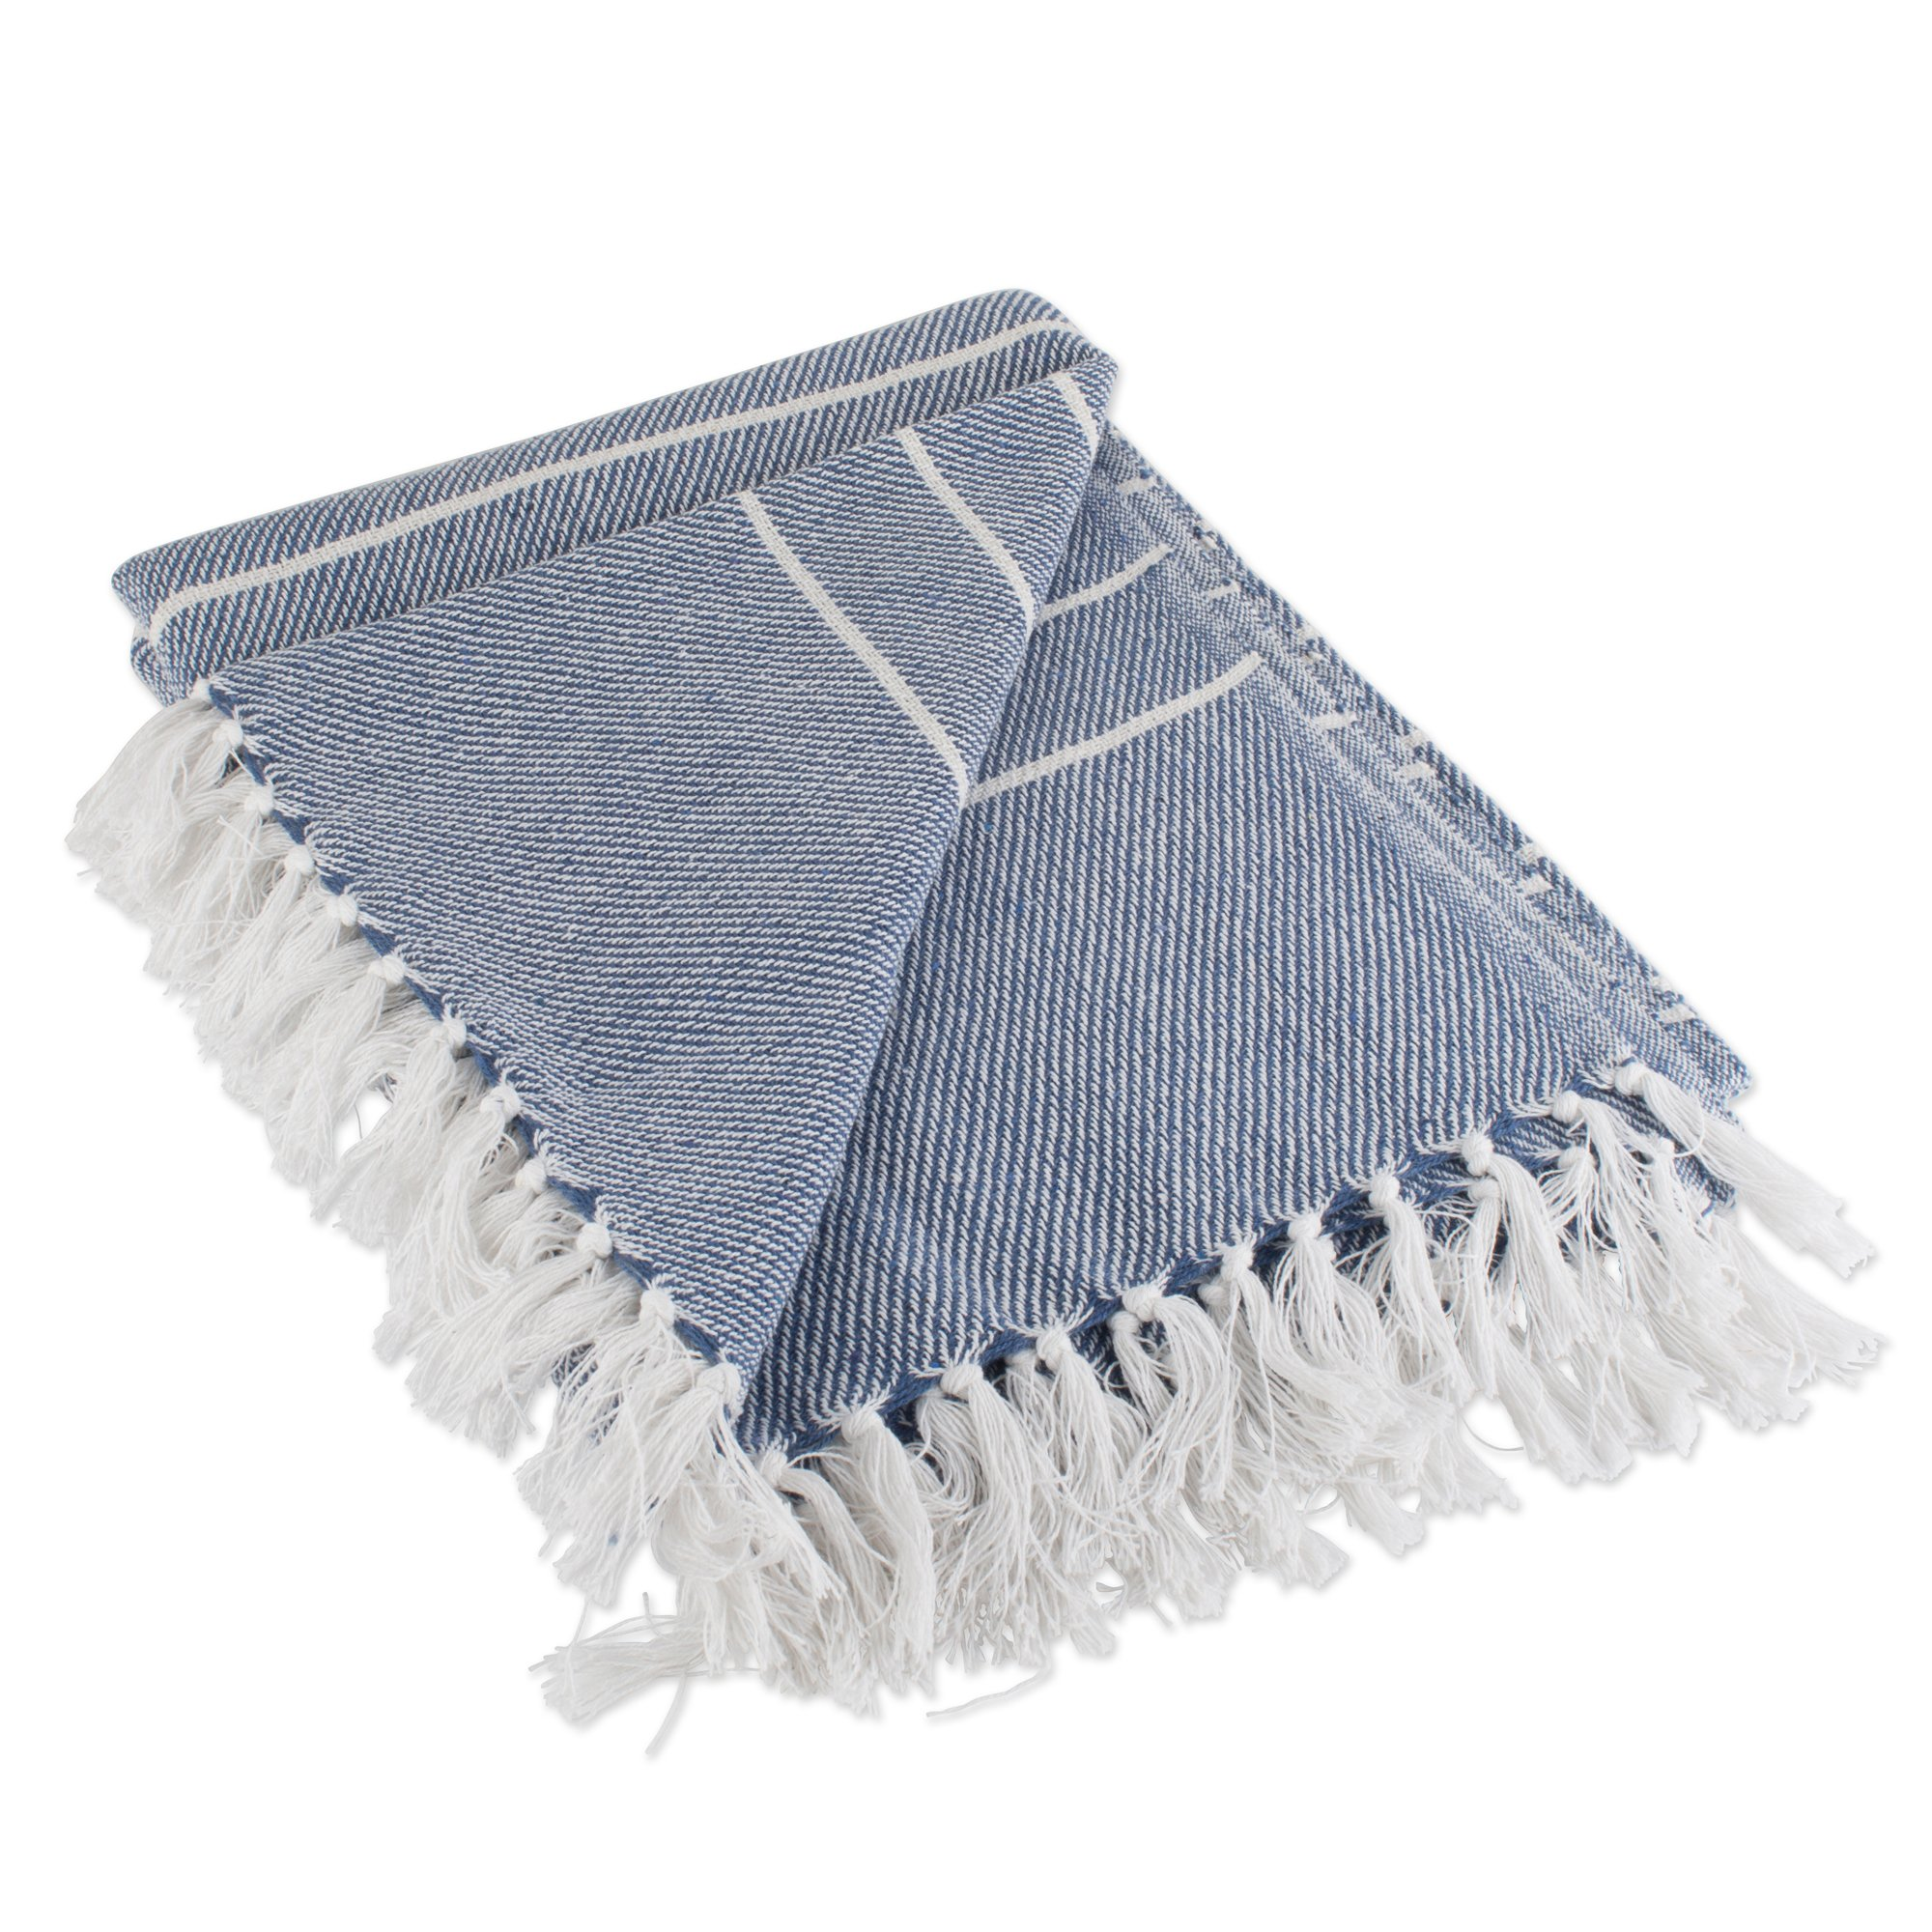 DII Rustic Farmhouse Cotton Thin White Striped Blanket Throw with Fringe for Chair, Couch, Picnic, Camping, Beach, Everyday Use, 50 x 60 - French Blue